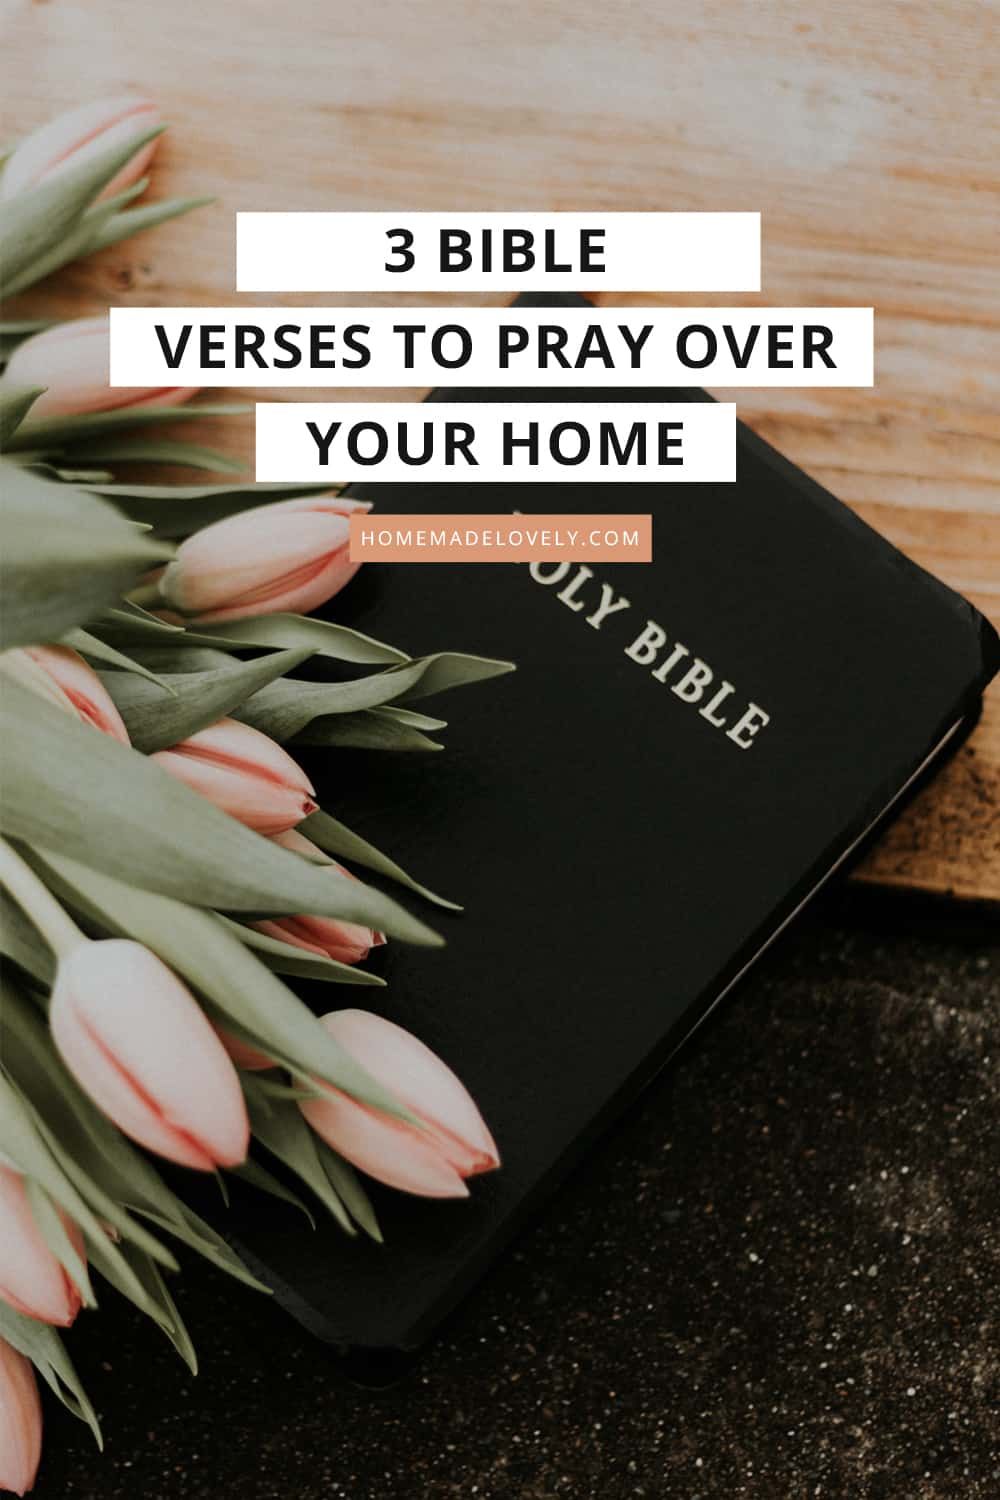 bible on wood table with pink tulips with text overlay that says 3 bible verses to pray over your home